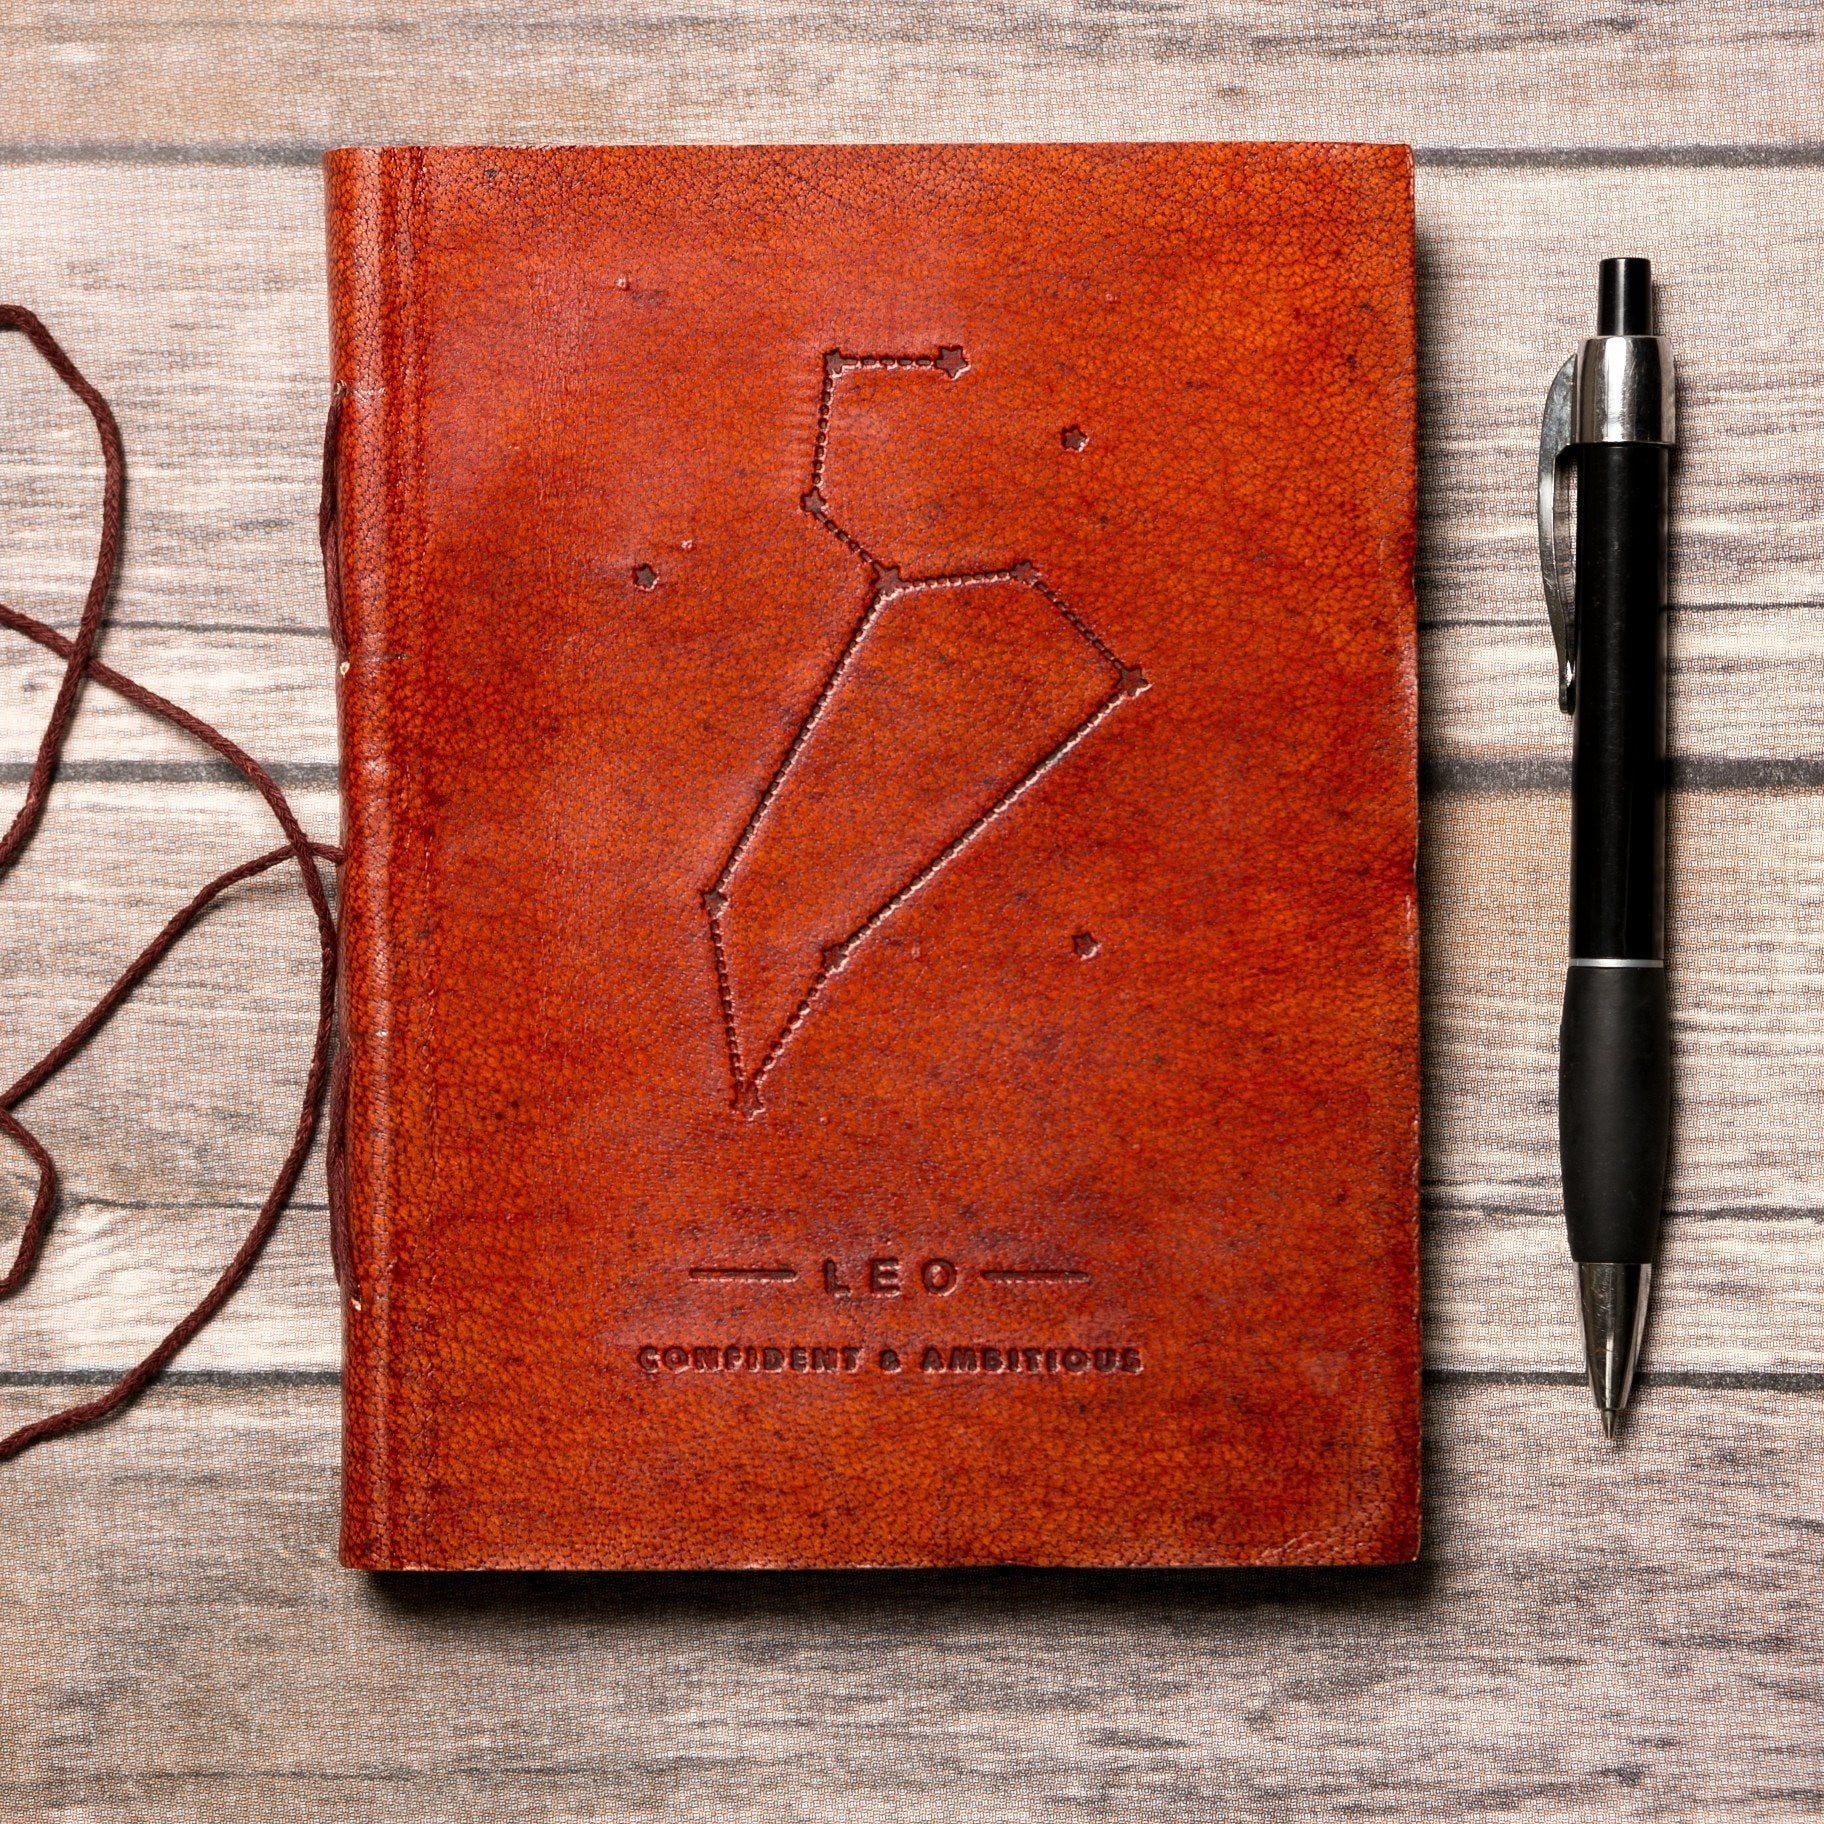 Leo Zodiac Handmade Leather Journal - Dimension Dream Seekers